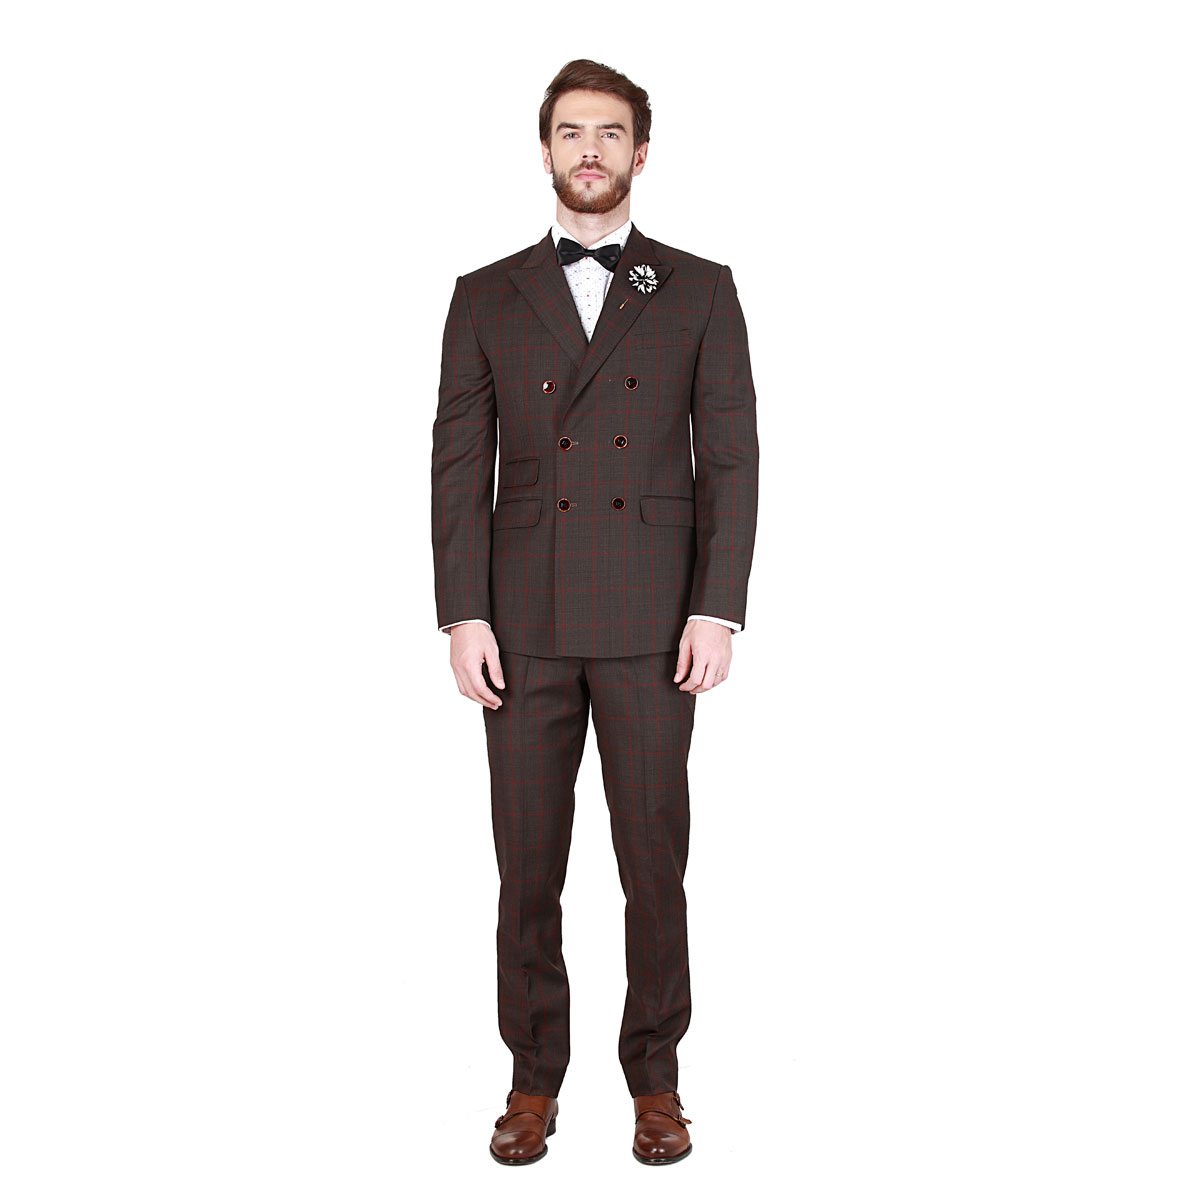 Top Spirits Brown Suit - Premium Bespoke Suits Online. Men's